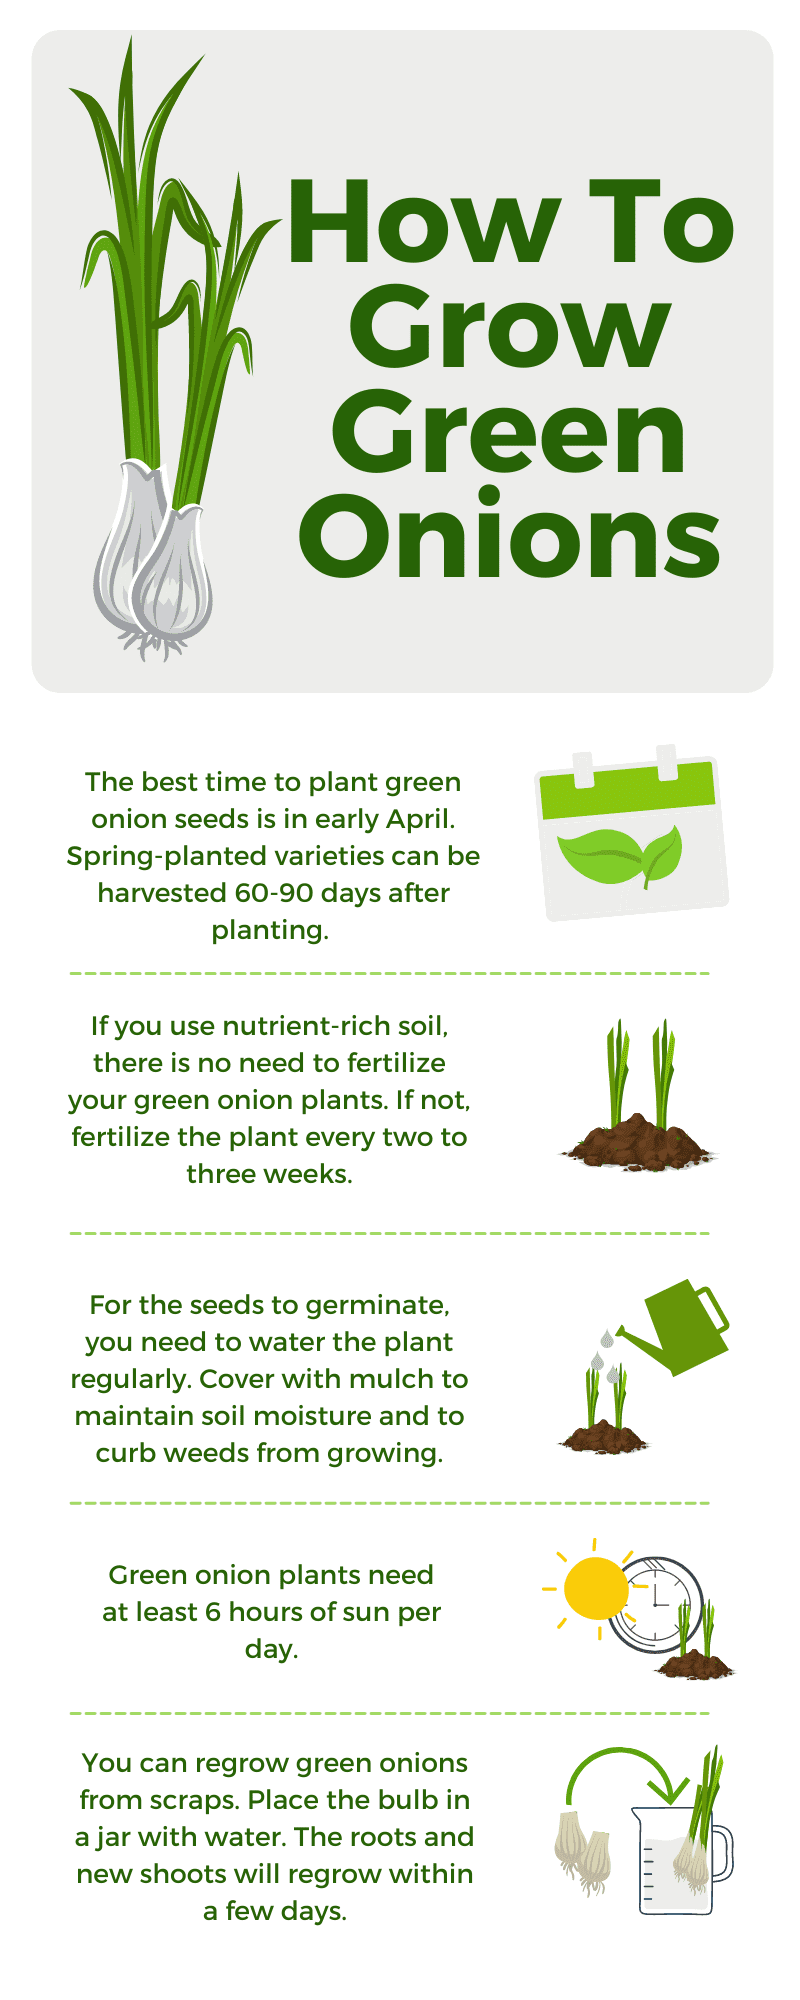 How To Grow Green Onions infographic